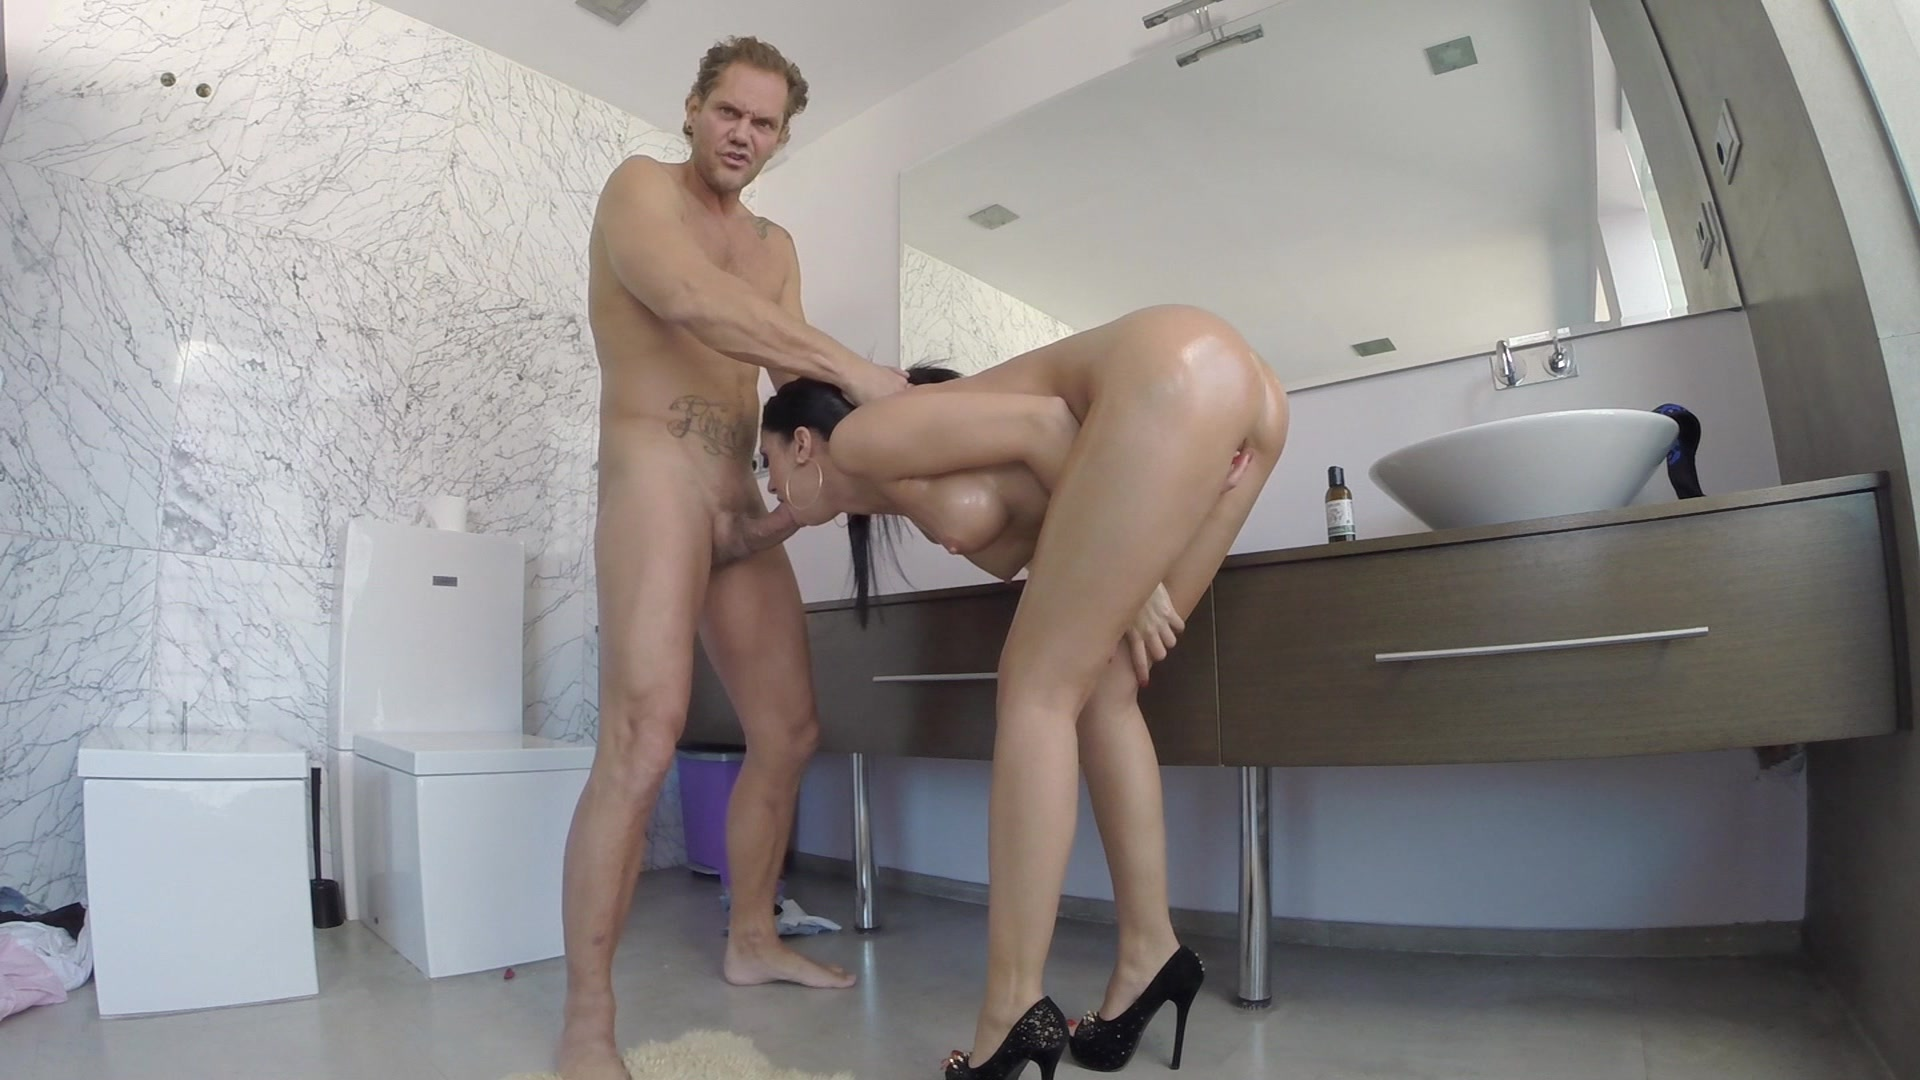 Super Hot Julia De Lucia Gets Fucked by a Hung Stud Starring:  Julia De Lucia